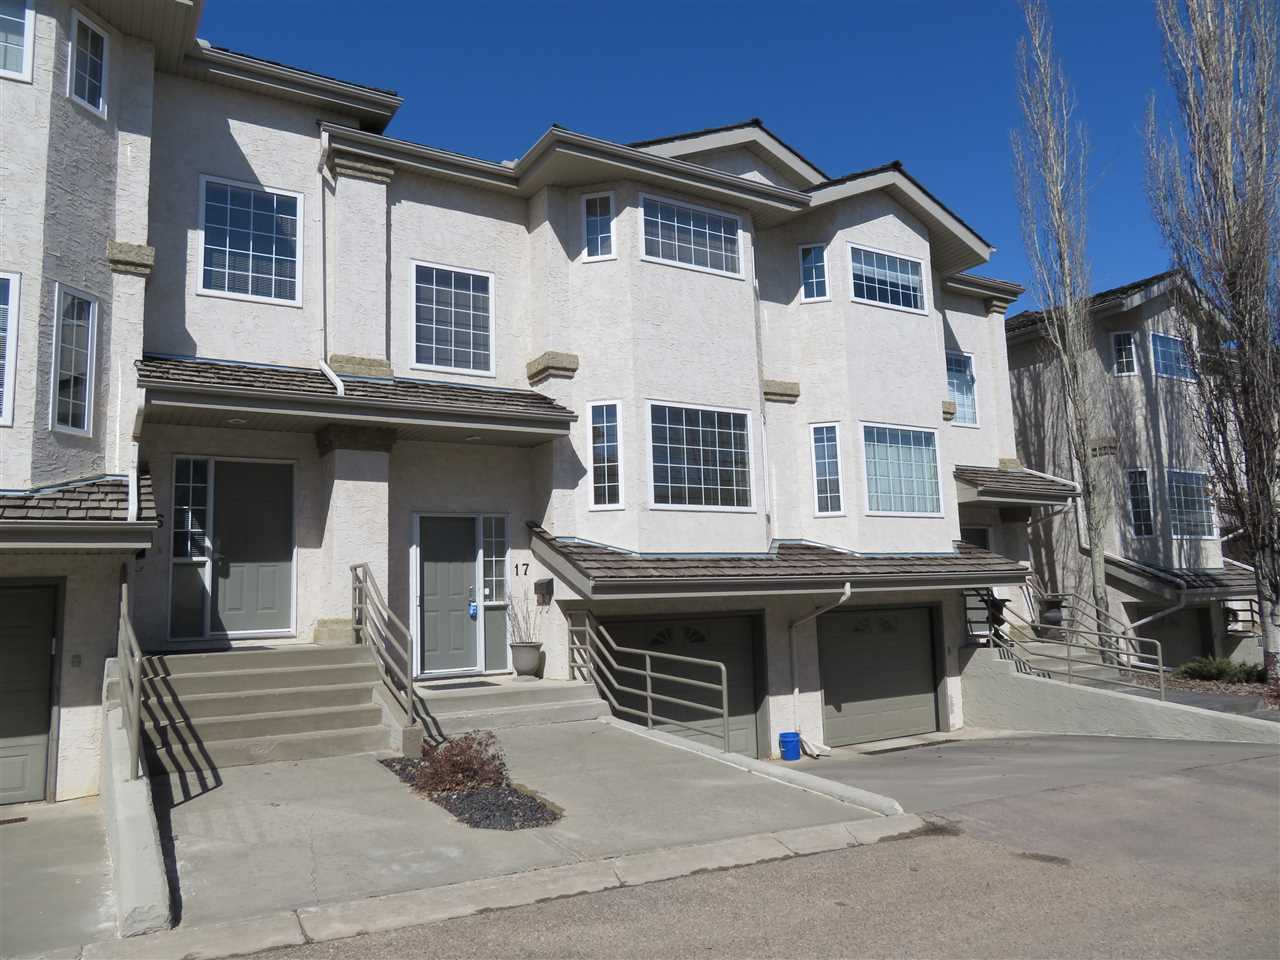 17 1295 CARTER CREST Road NW, 3 bed, 2.1 bath, at $314,800